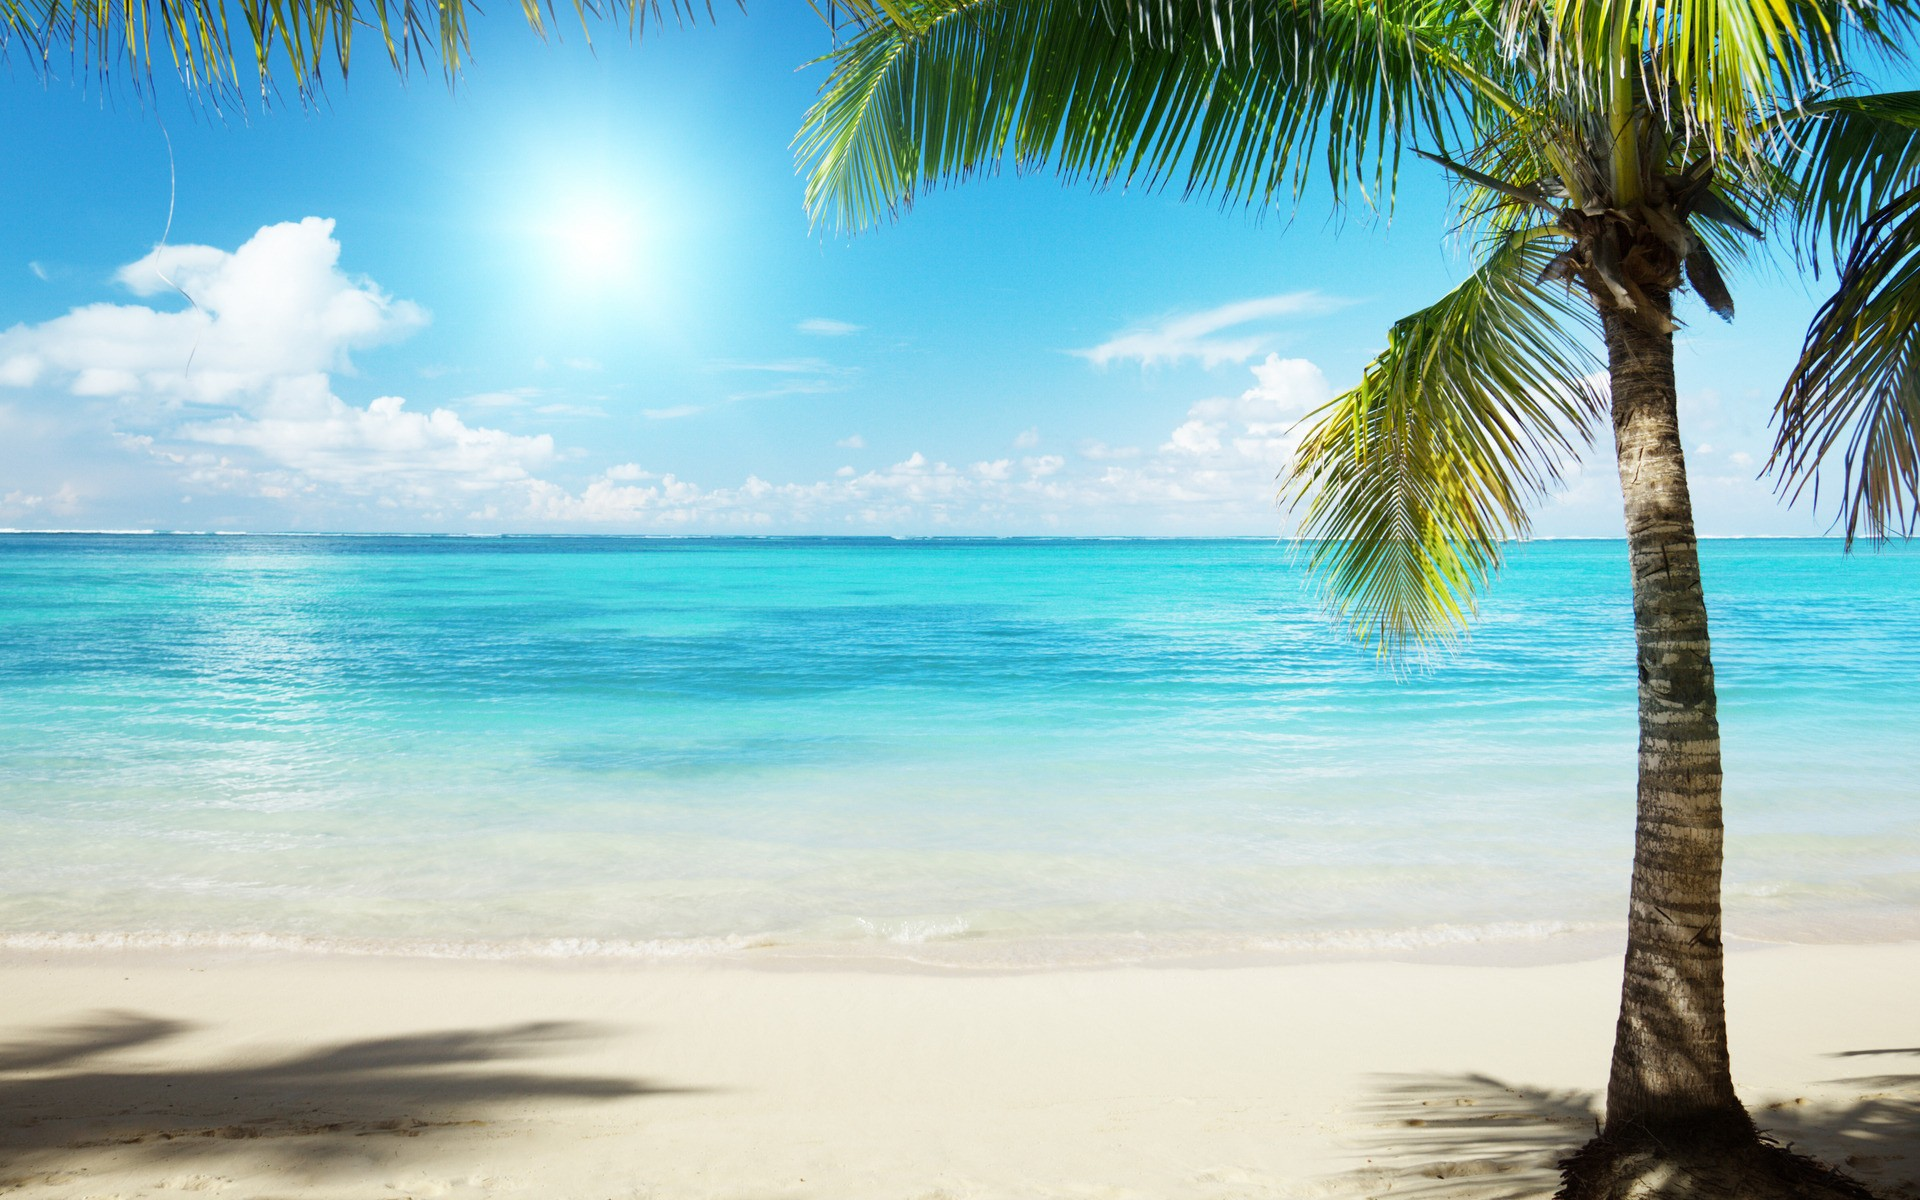 Beach HD Wallpapers Desktop Pictures One HD Wallpaper 1920x1200